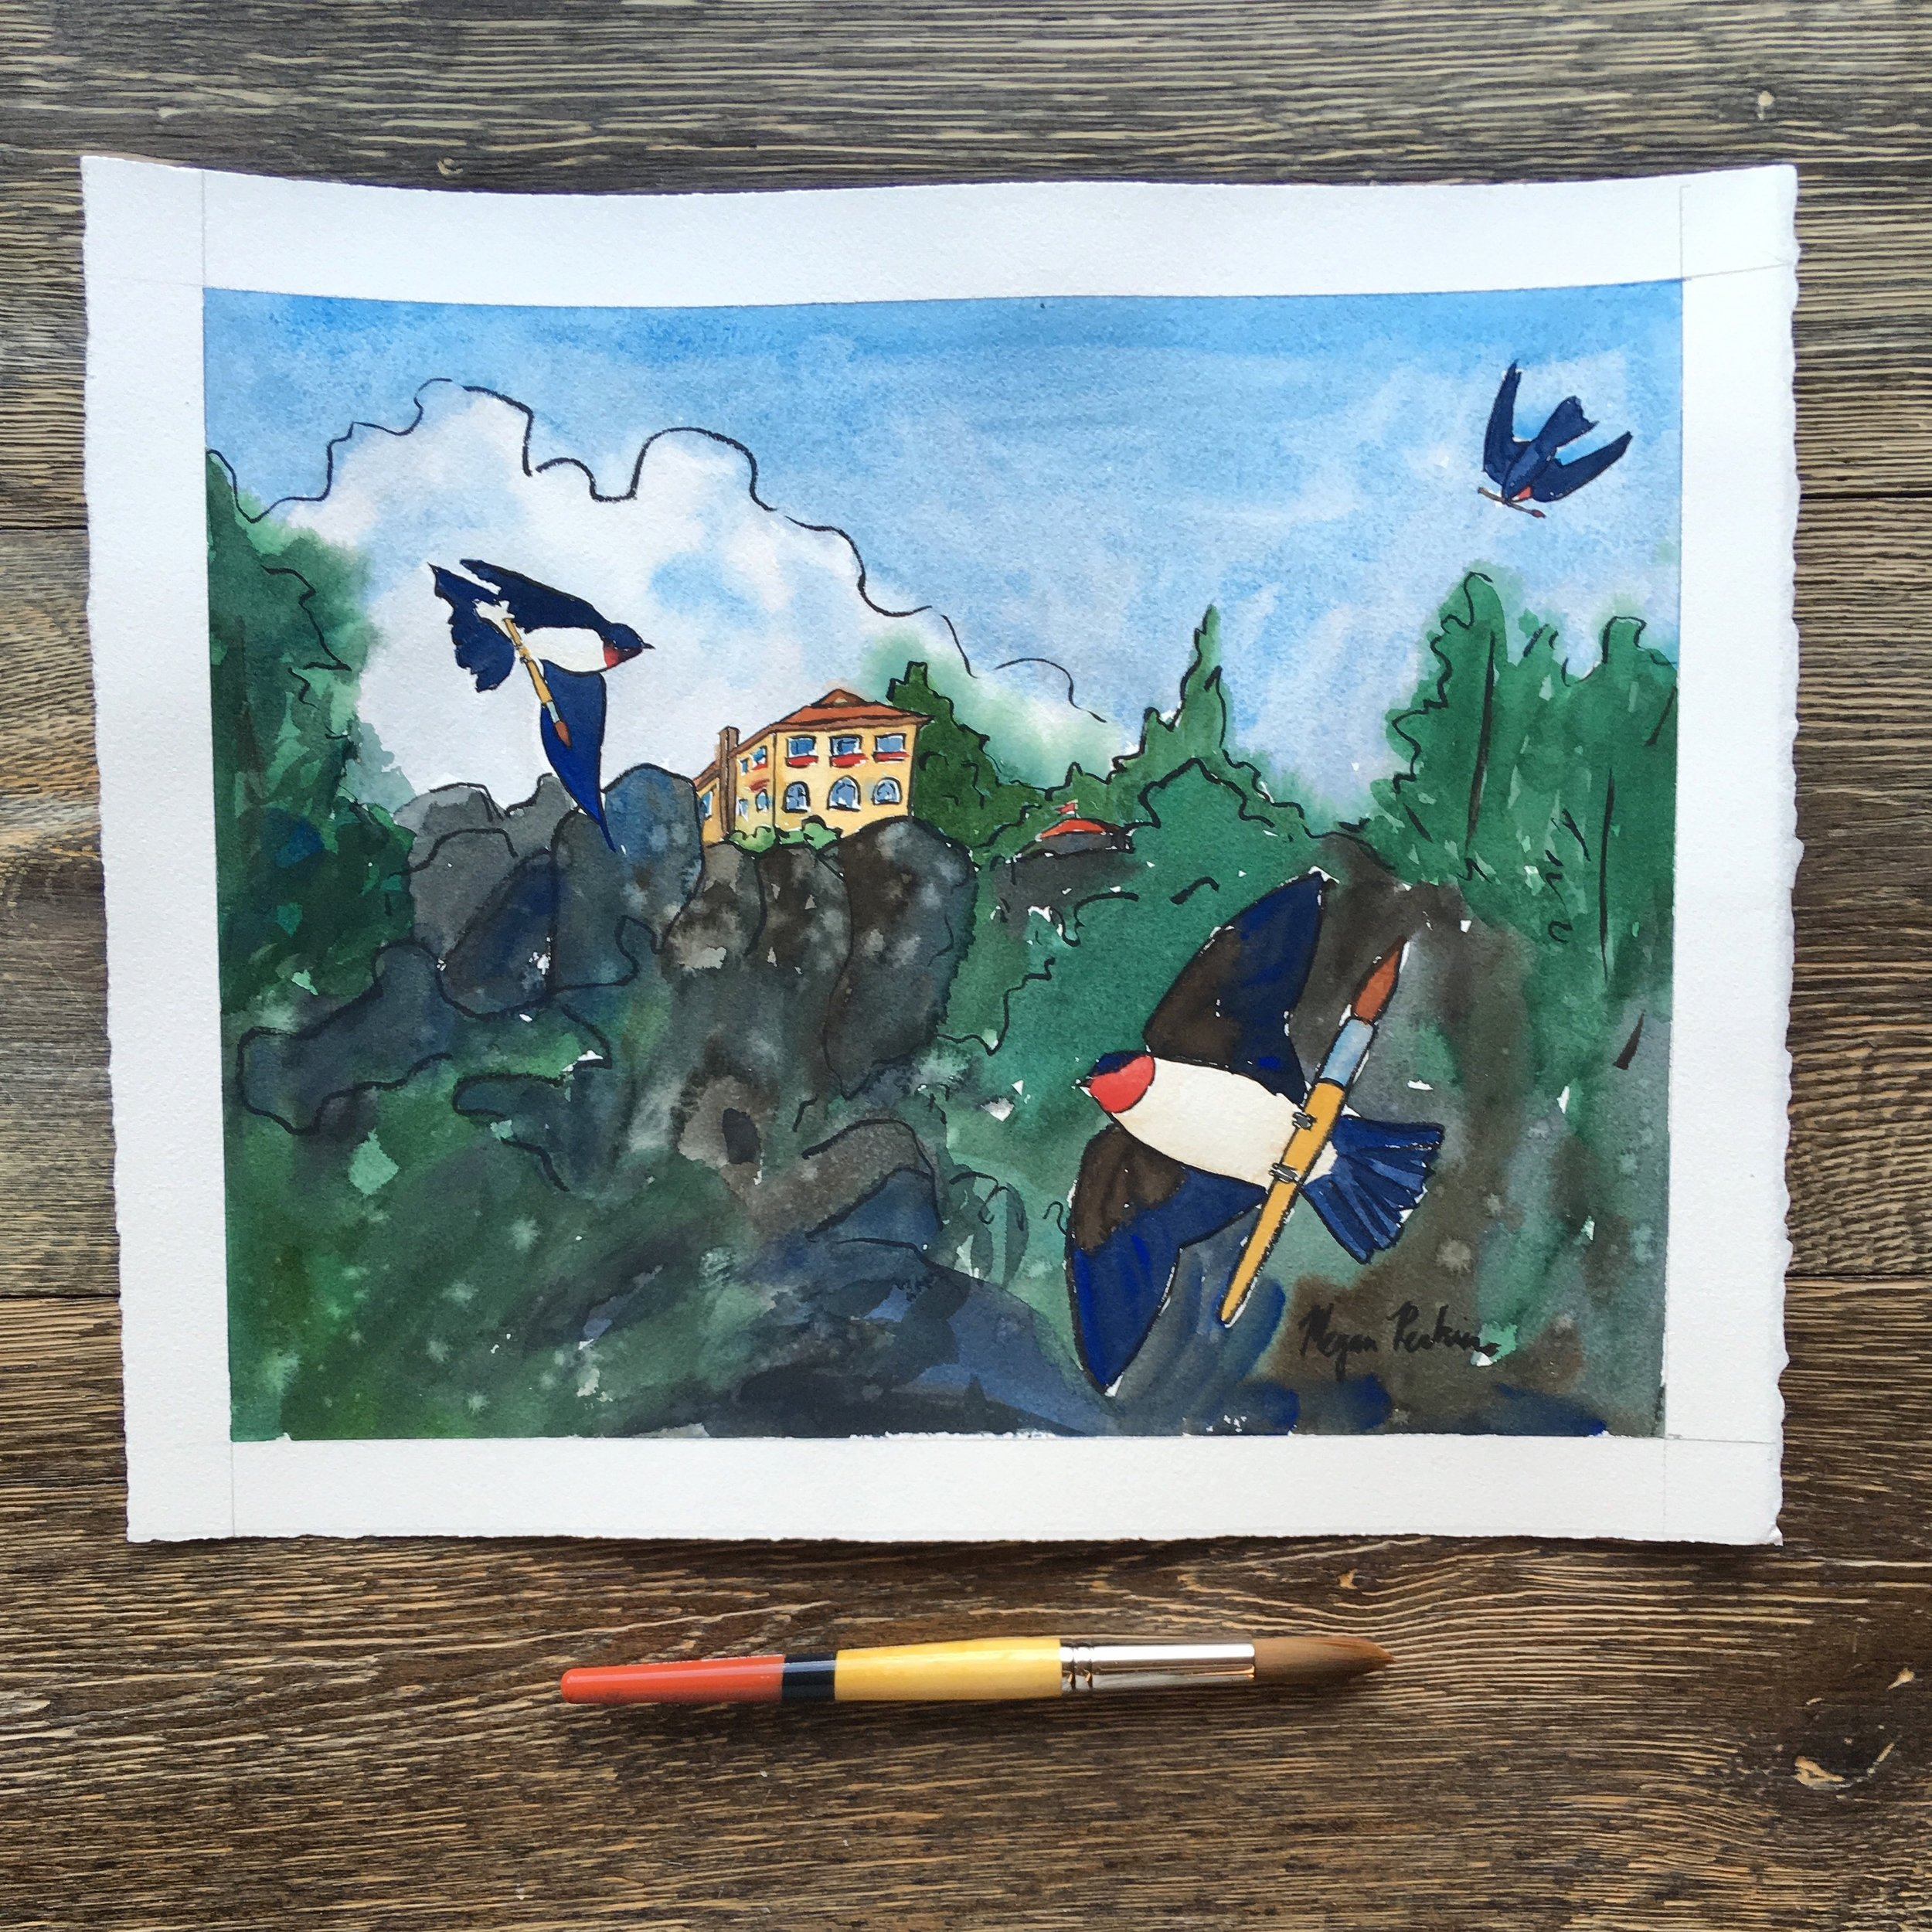 The original painting. I so love the swooping swallows at Arborcrest. I stand close to the edge of the cliff and pretend that I'm soaring over the Spokane Valley with them.